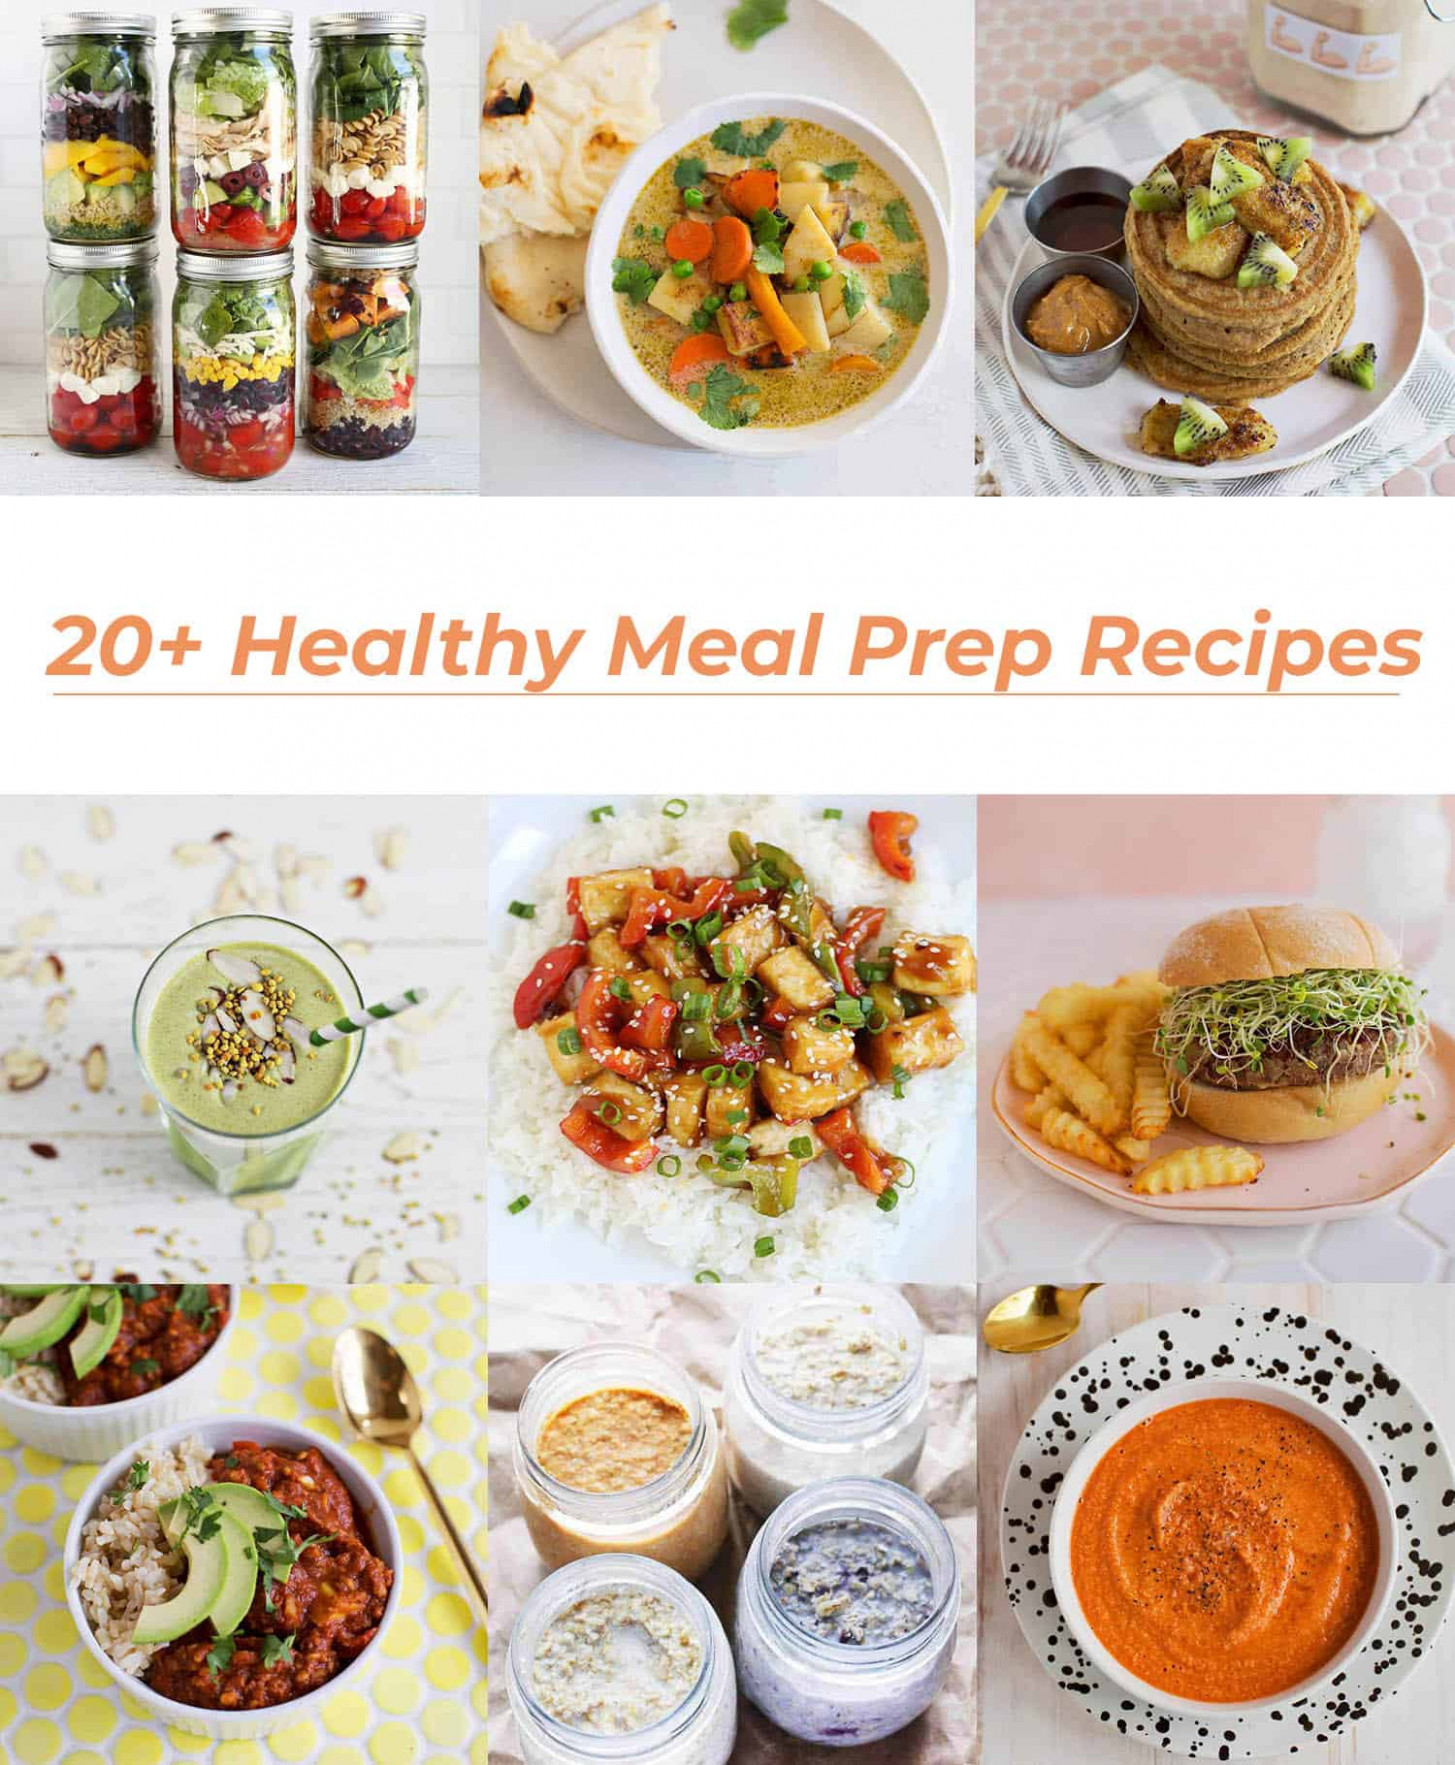 Food: 10+ Healthy Meal Prep Recipes – DiyForYou - healthy meal prep recipes